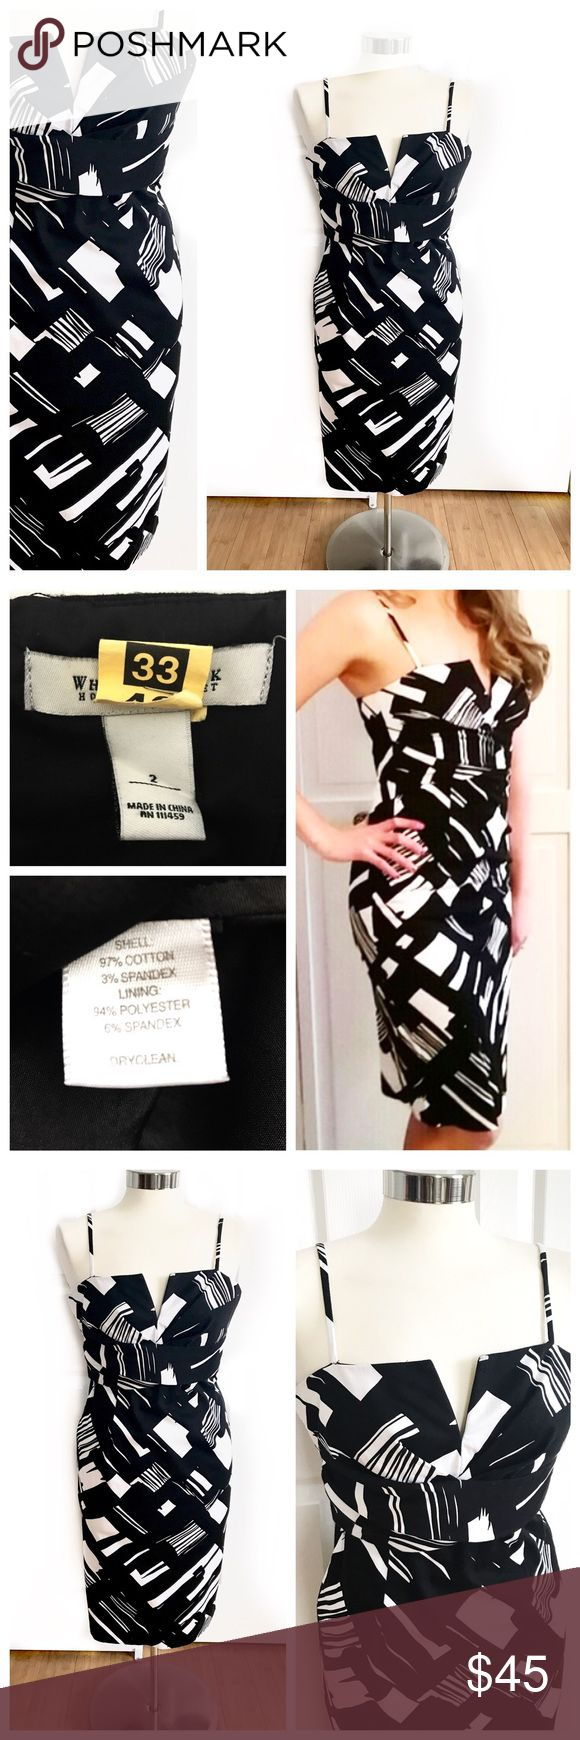 White House Black Market WHBM Black & White Dress WHBM spaghetti strap dress. Black and white print. Straps are adjustable. V neck dip. Wire in the v that keeps it in place. Really flattering. Slit in back. Fitted. Chest is lined in black. Stretch to fabric. 97% cotton 3% spandex. Worn twice. Drycleaned. Great to wear to a wedding, graduation, bridal shower, bachelorette party, engagement party! Love the white for brides! White House Black Market size 2. White House Black Market Dresses